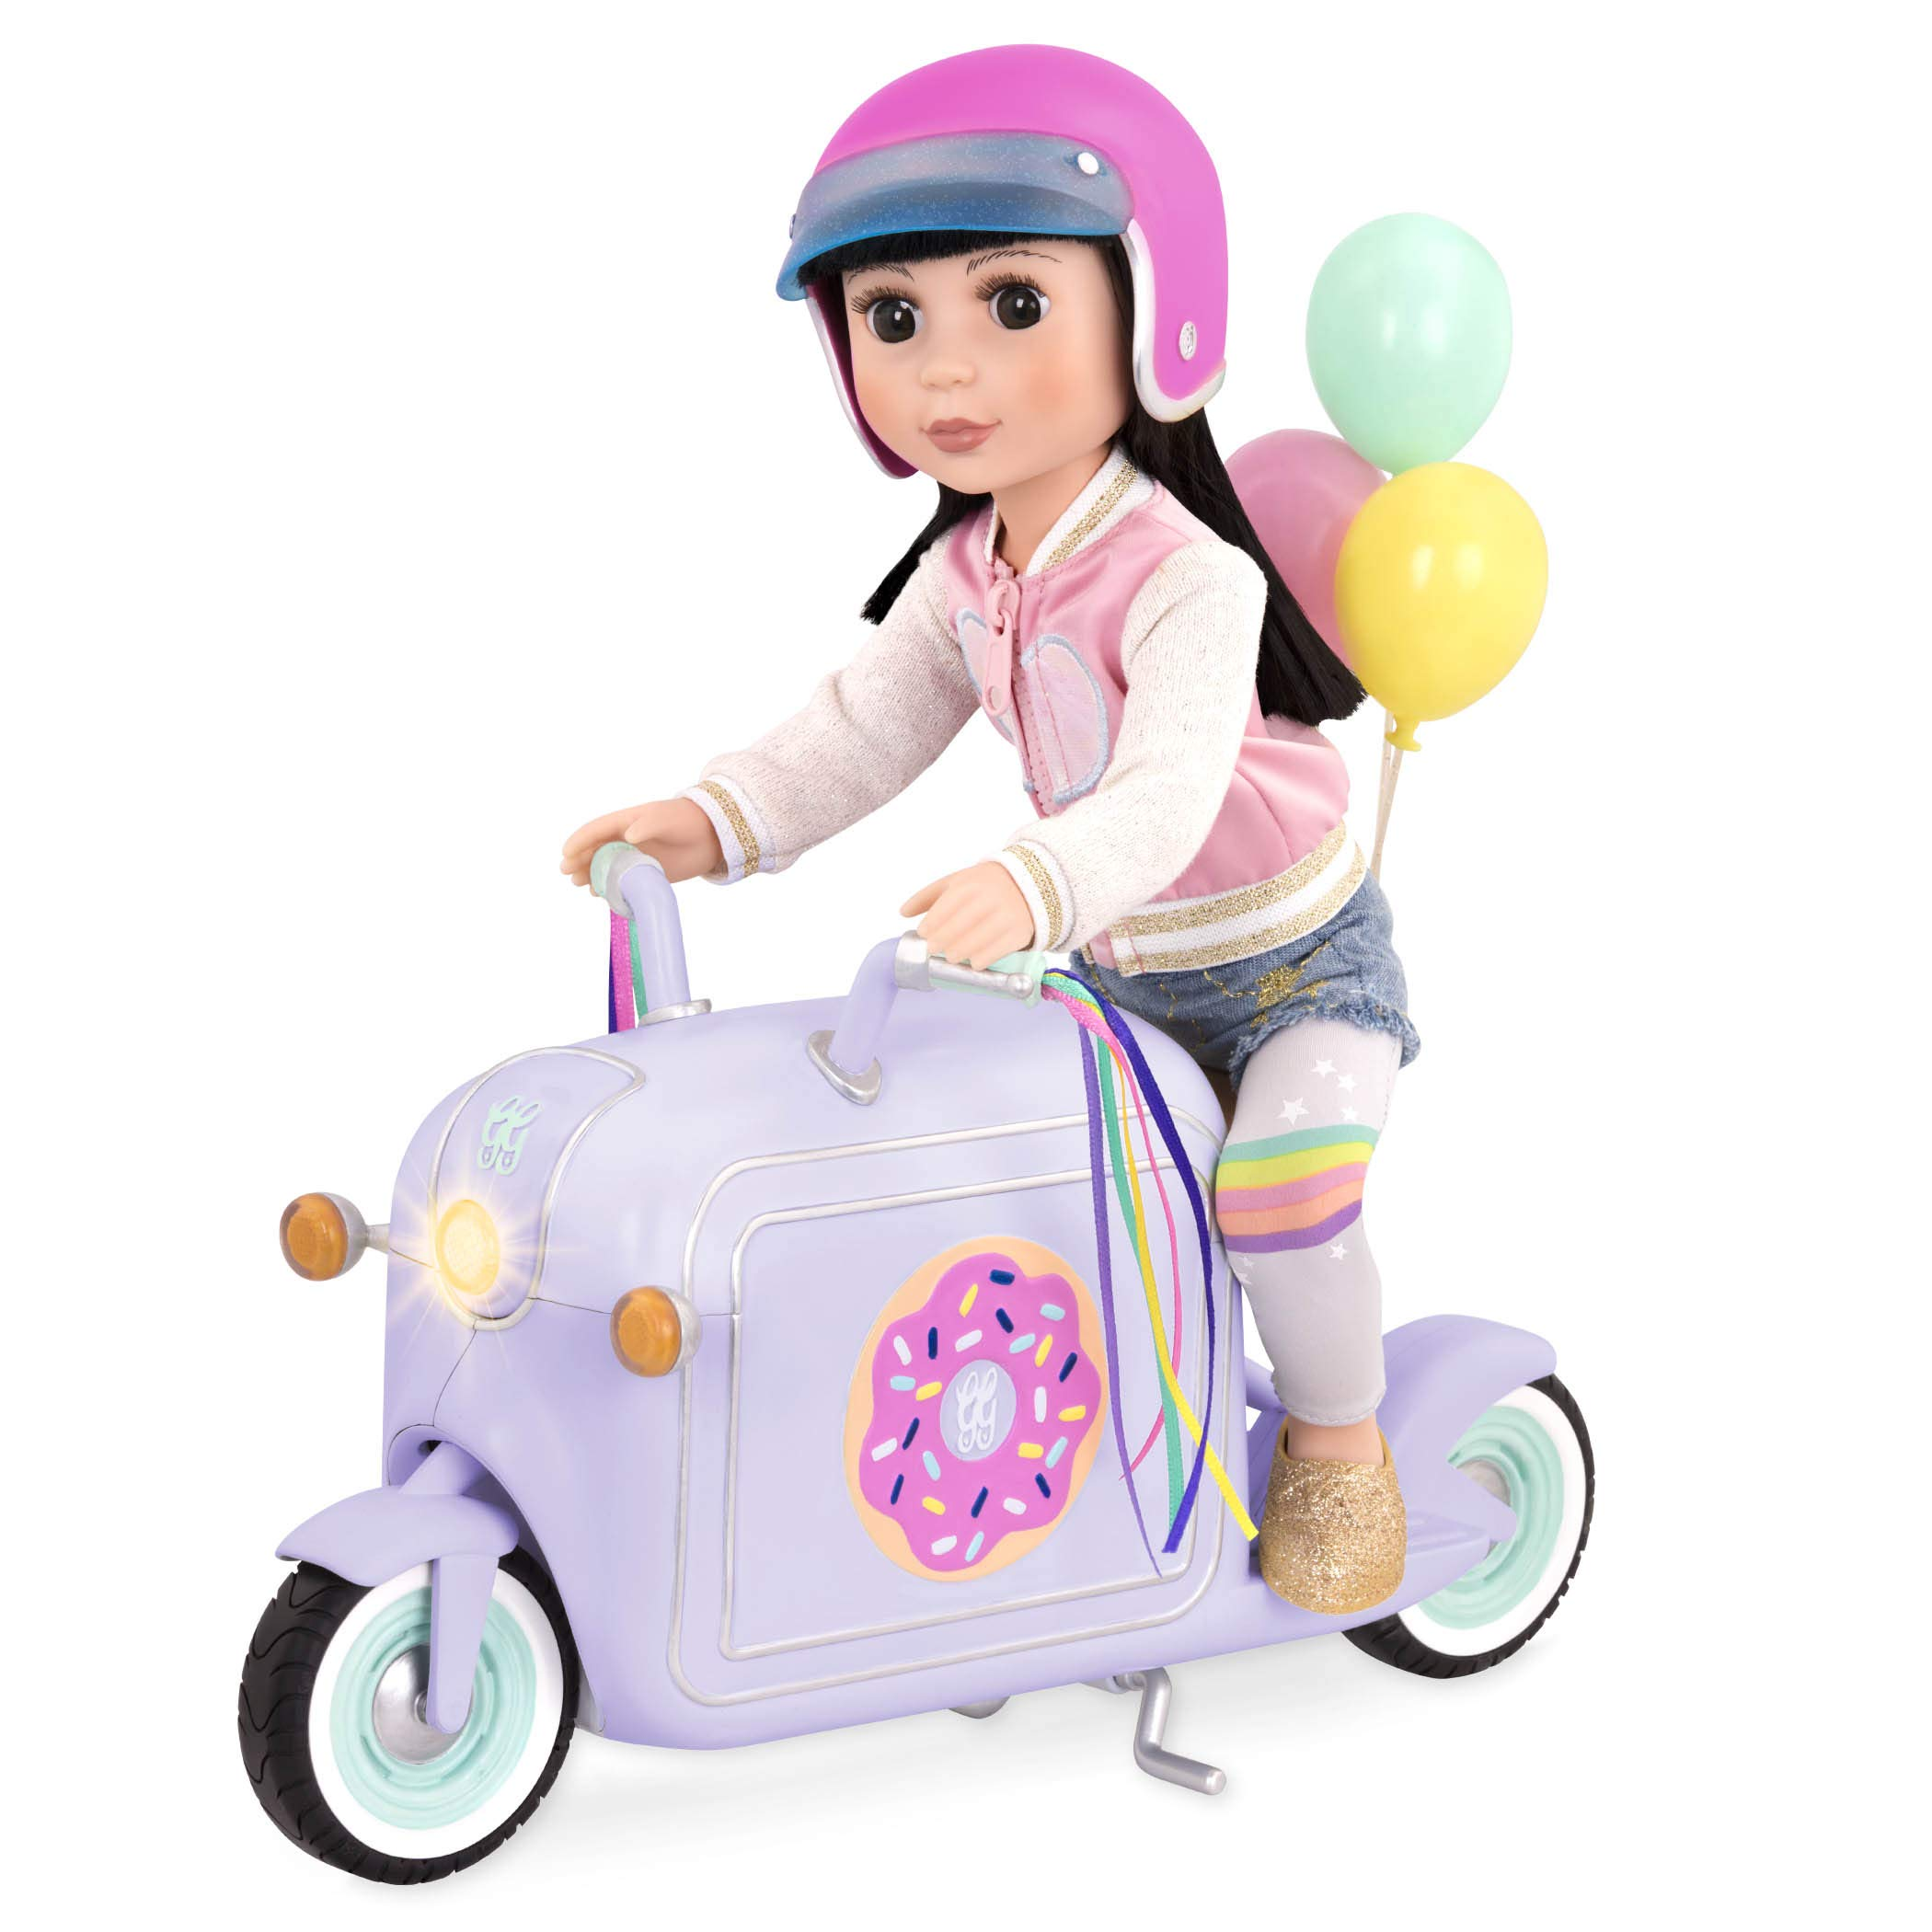 Glitter Girls by Battat – Donut Delivery Scooter for 14-inch Dolls - Toys, Clothes and Accessories For Girls 3-Year-Old and Up